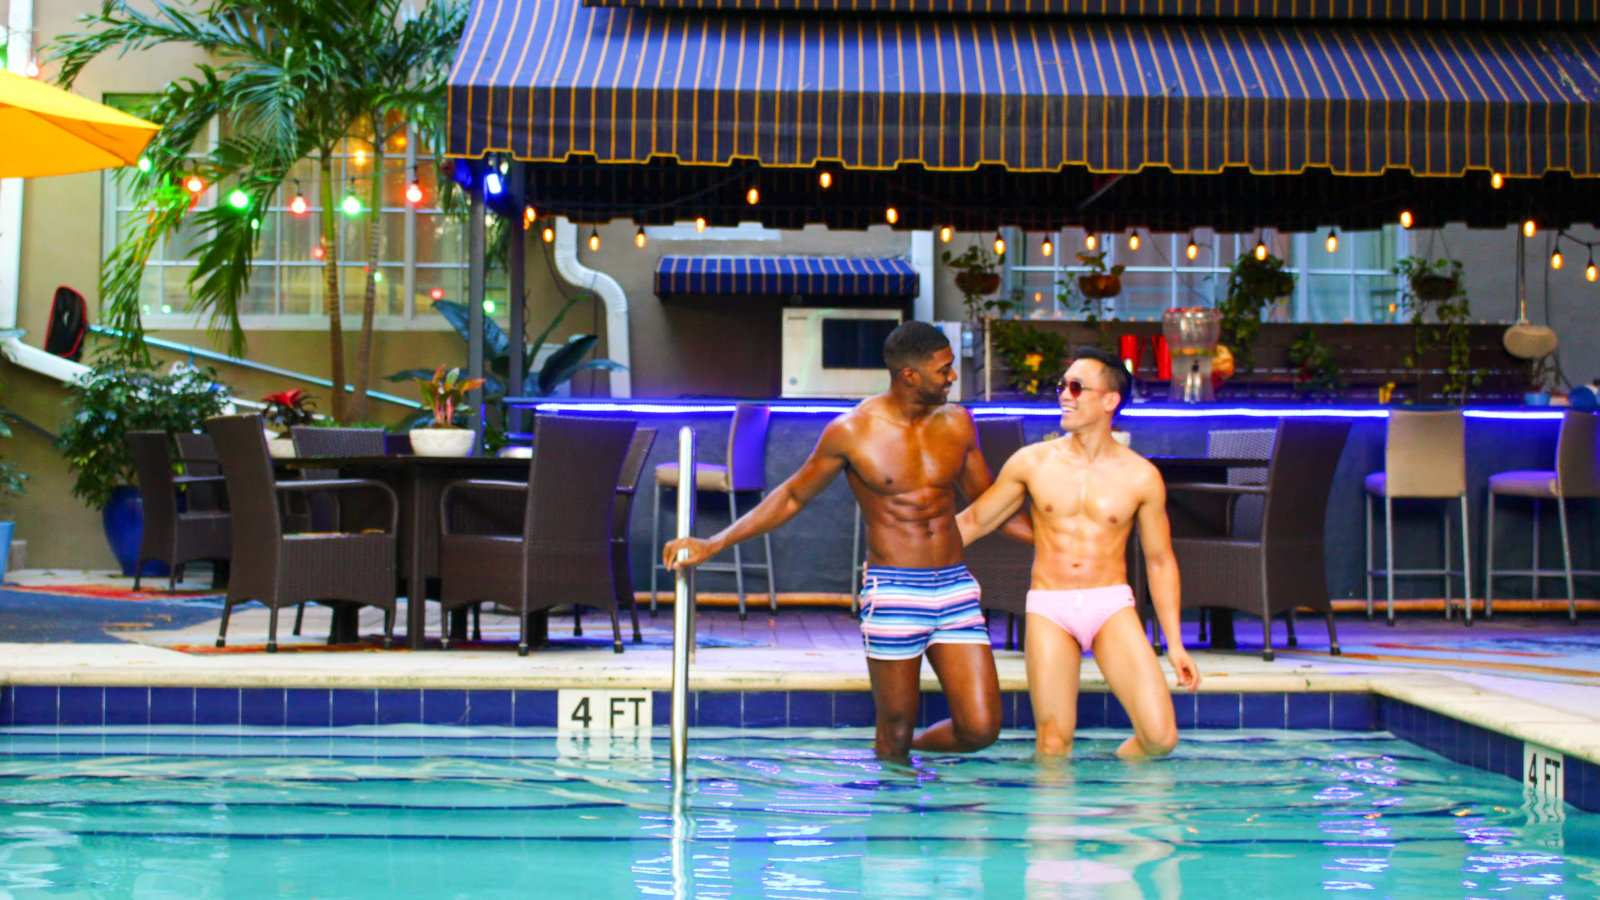 Miami Beach Pride hosts a fabulous pool party that is one of the most fun events during the whole fabulous week!